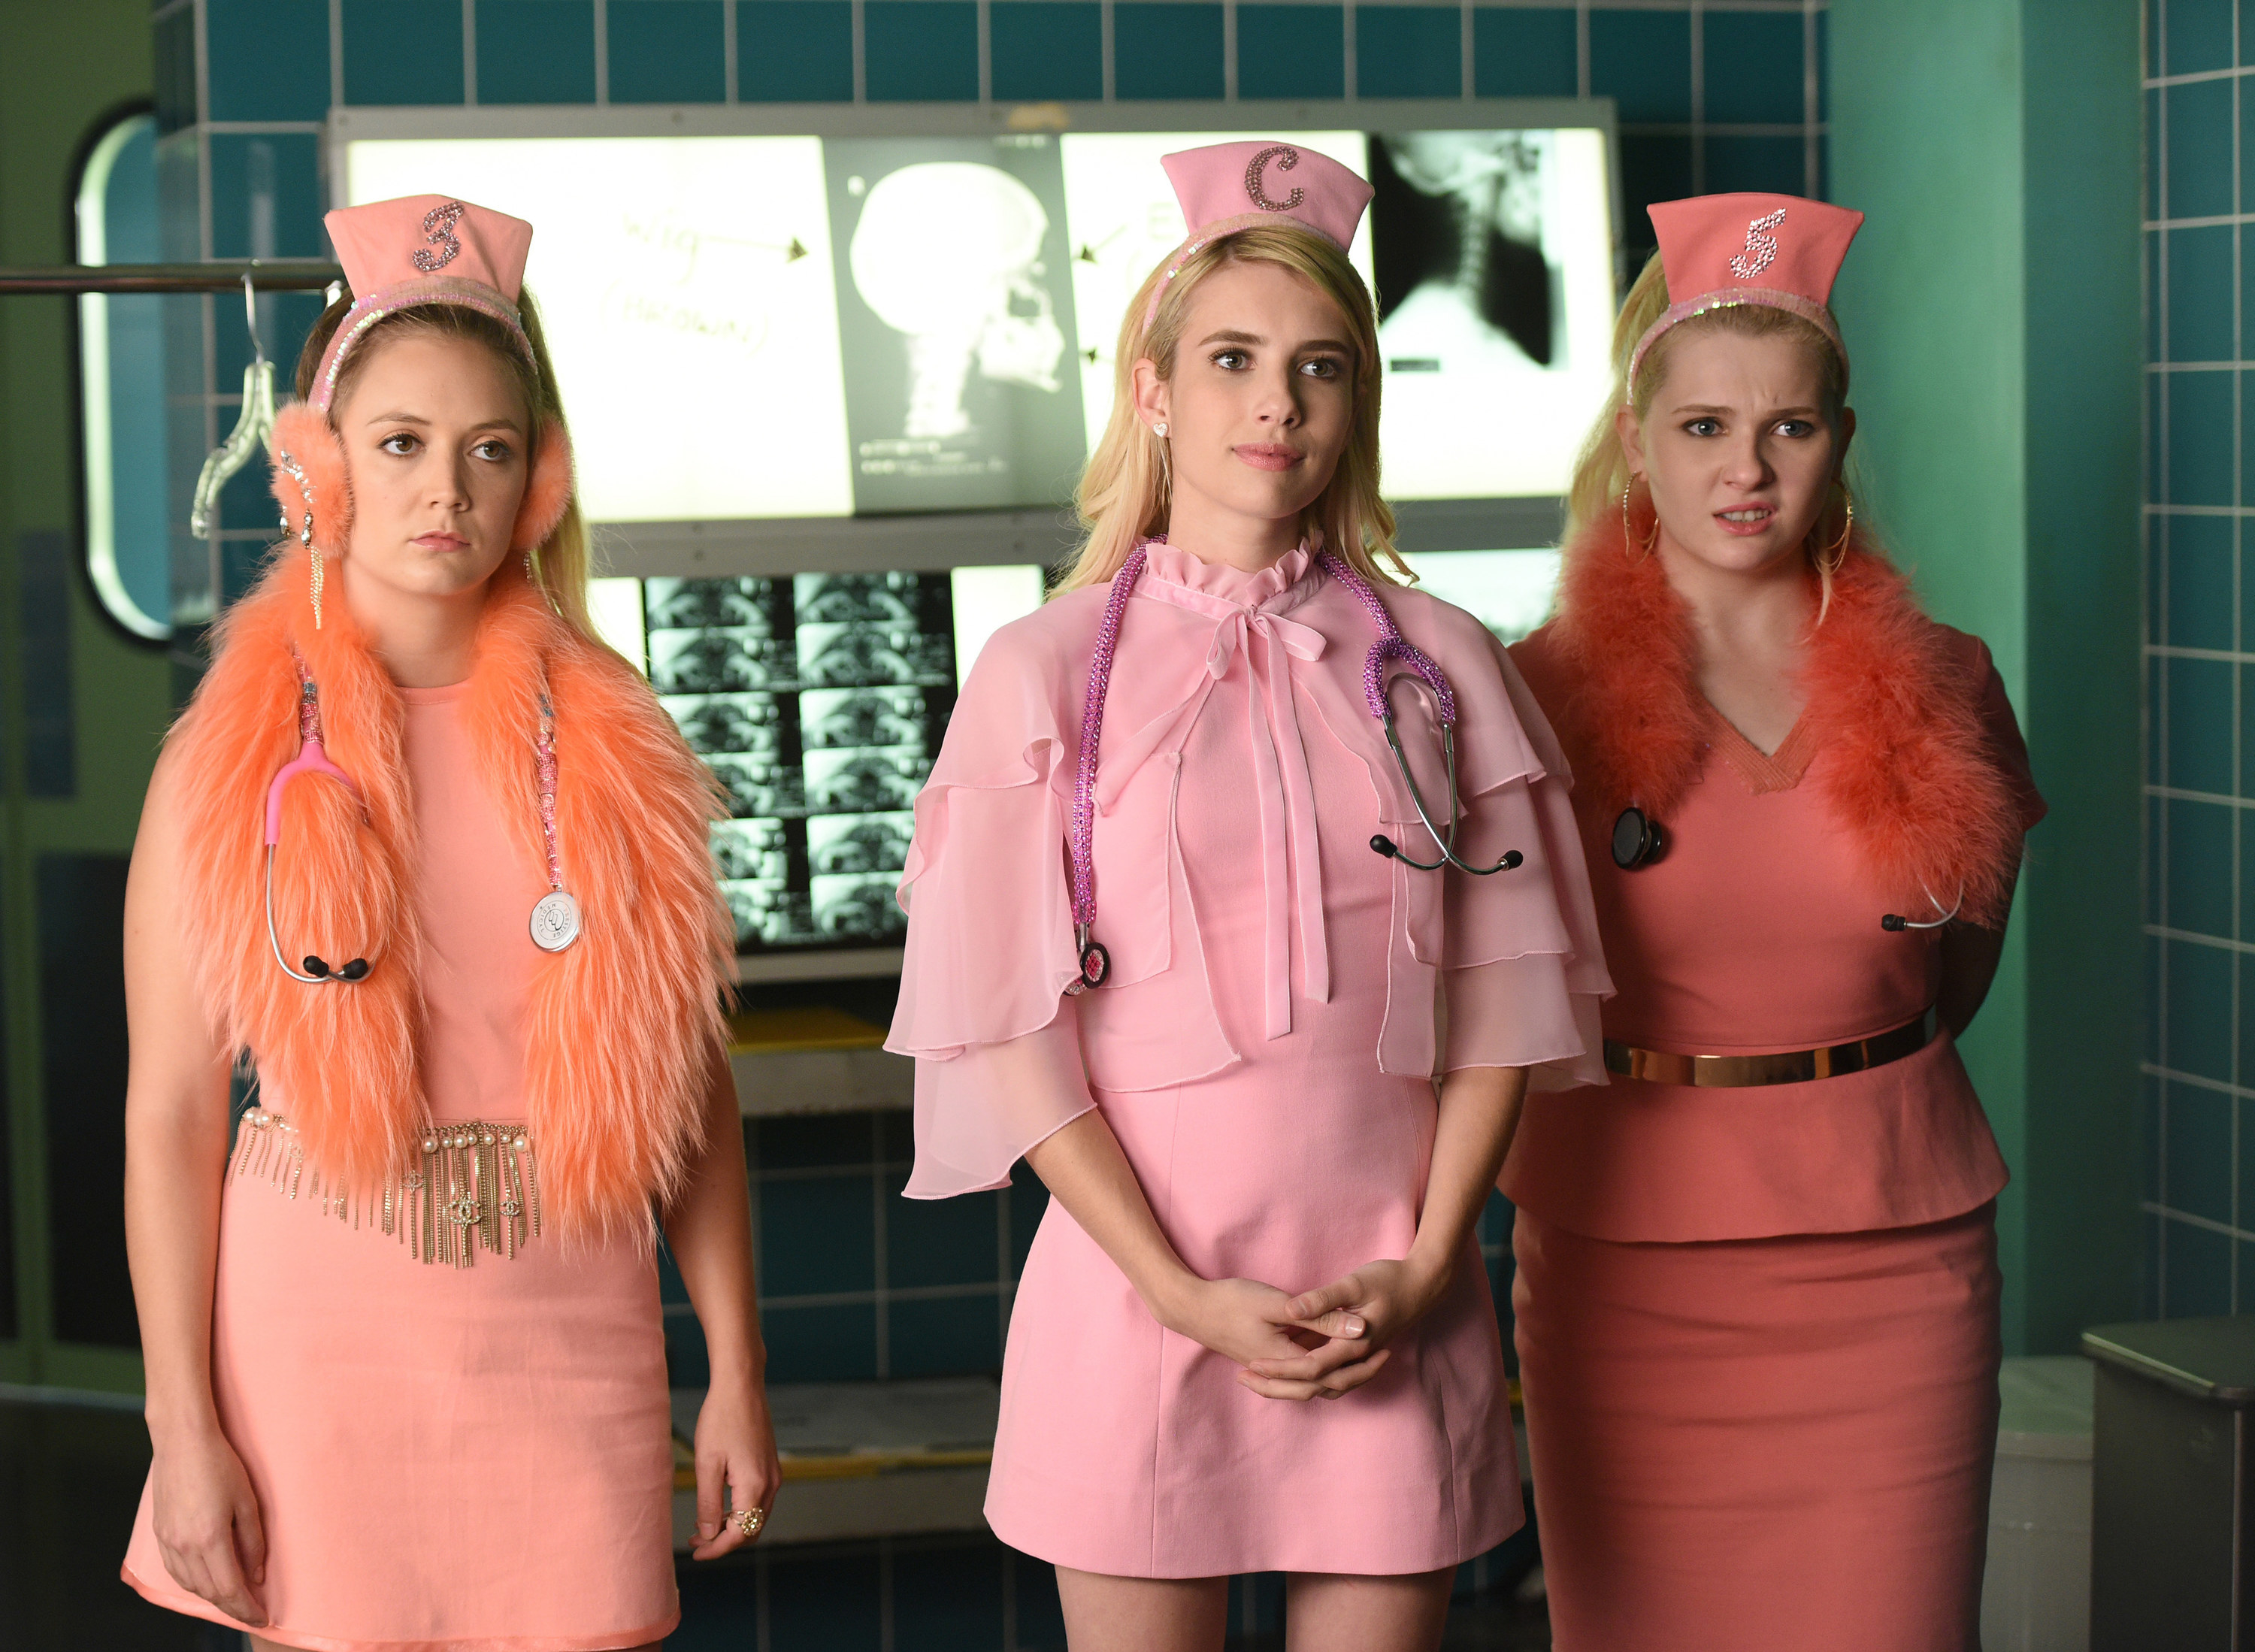 Billie Lourd, Emma Roberts, and Abigail Breslin wear pink doctors outfits